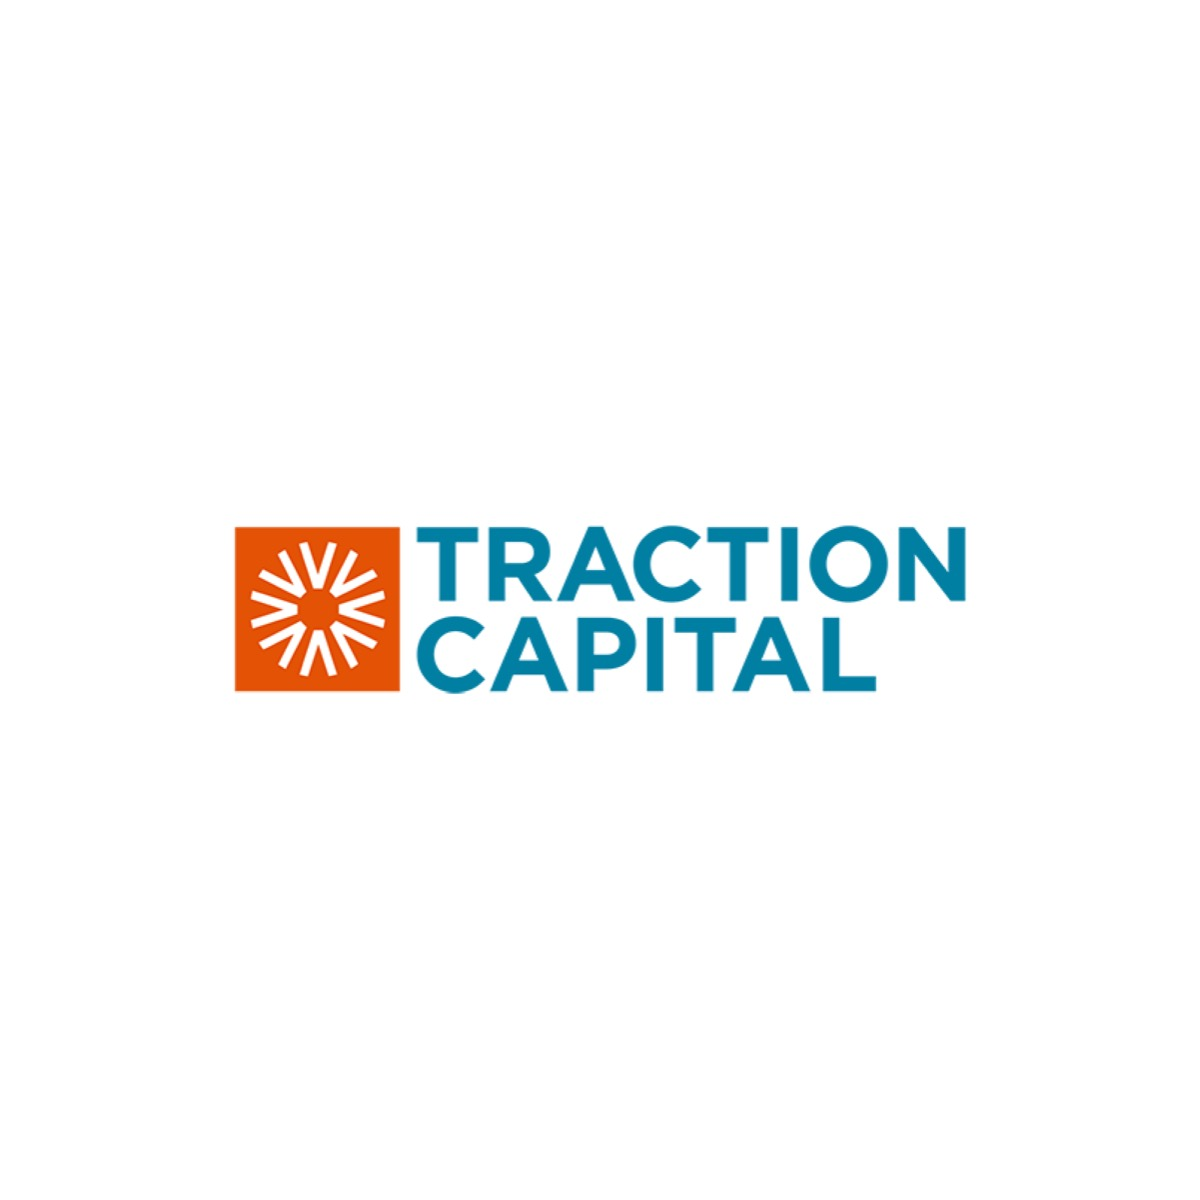 Traction Capital